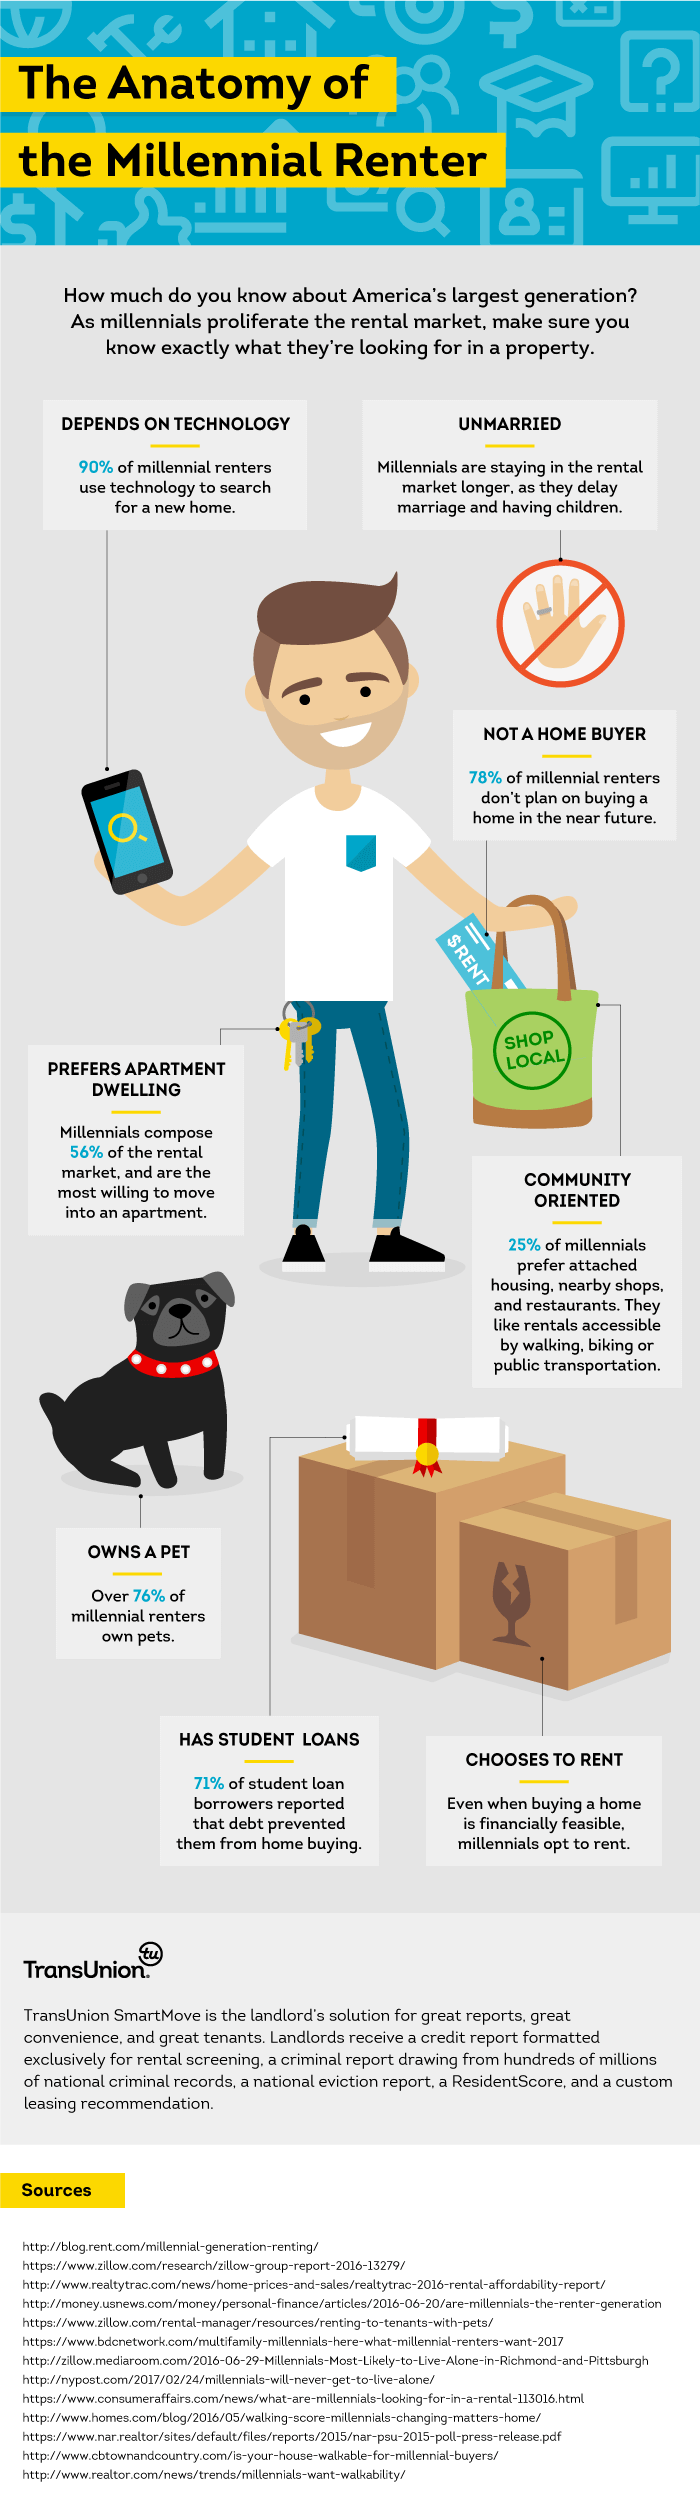 The Anatomy Of A Millennial Renter [INFOGRAPHIC]